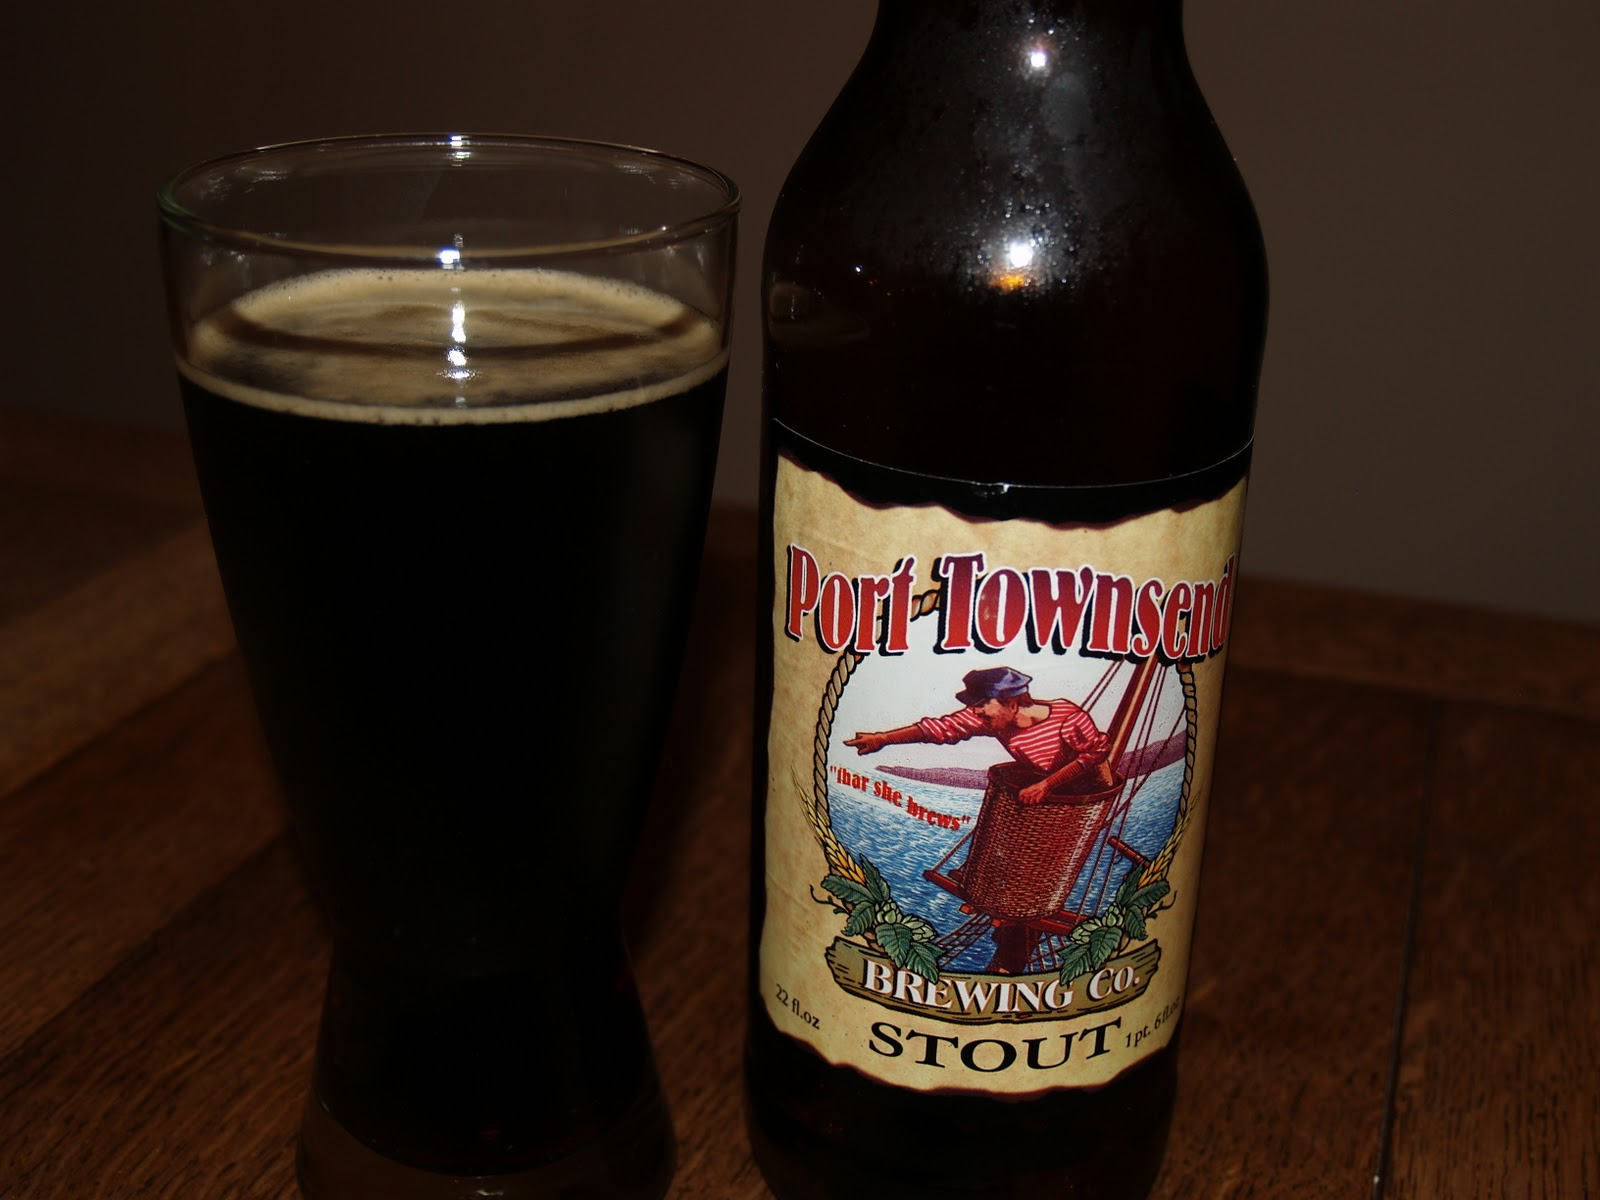 Friday Happy Hour: Strait Stout from Port Townsend Brewing Company